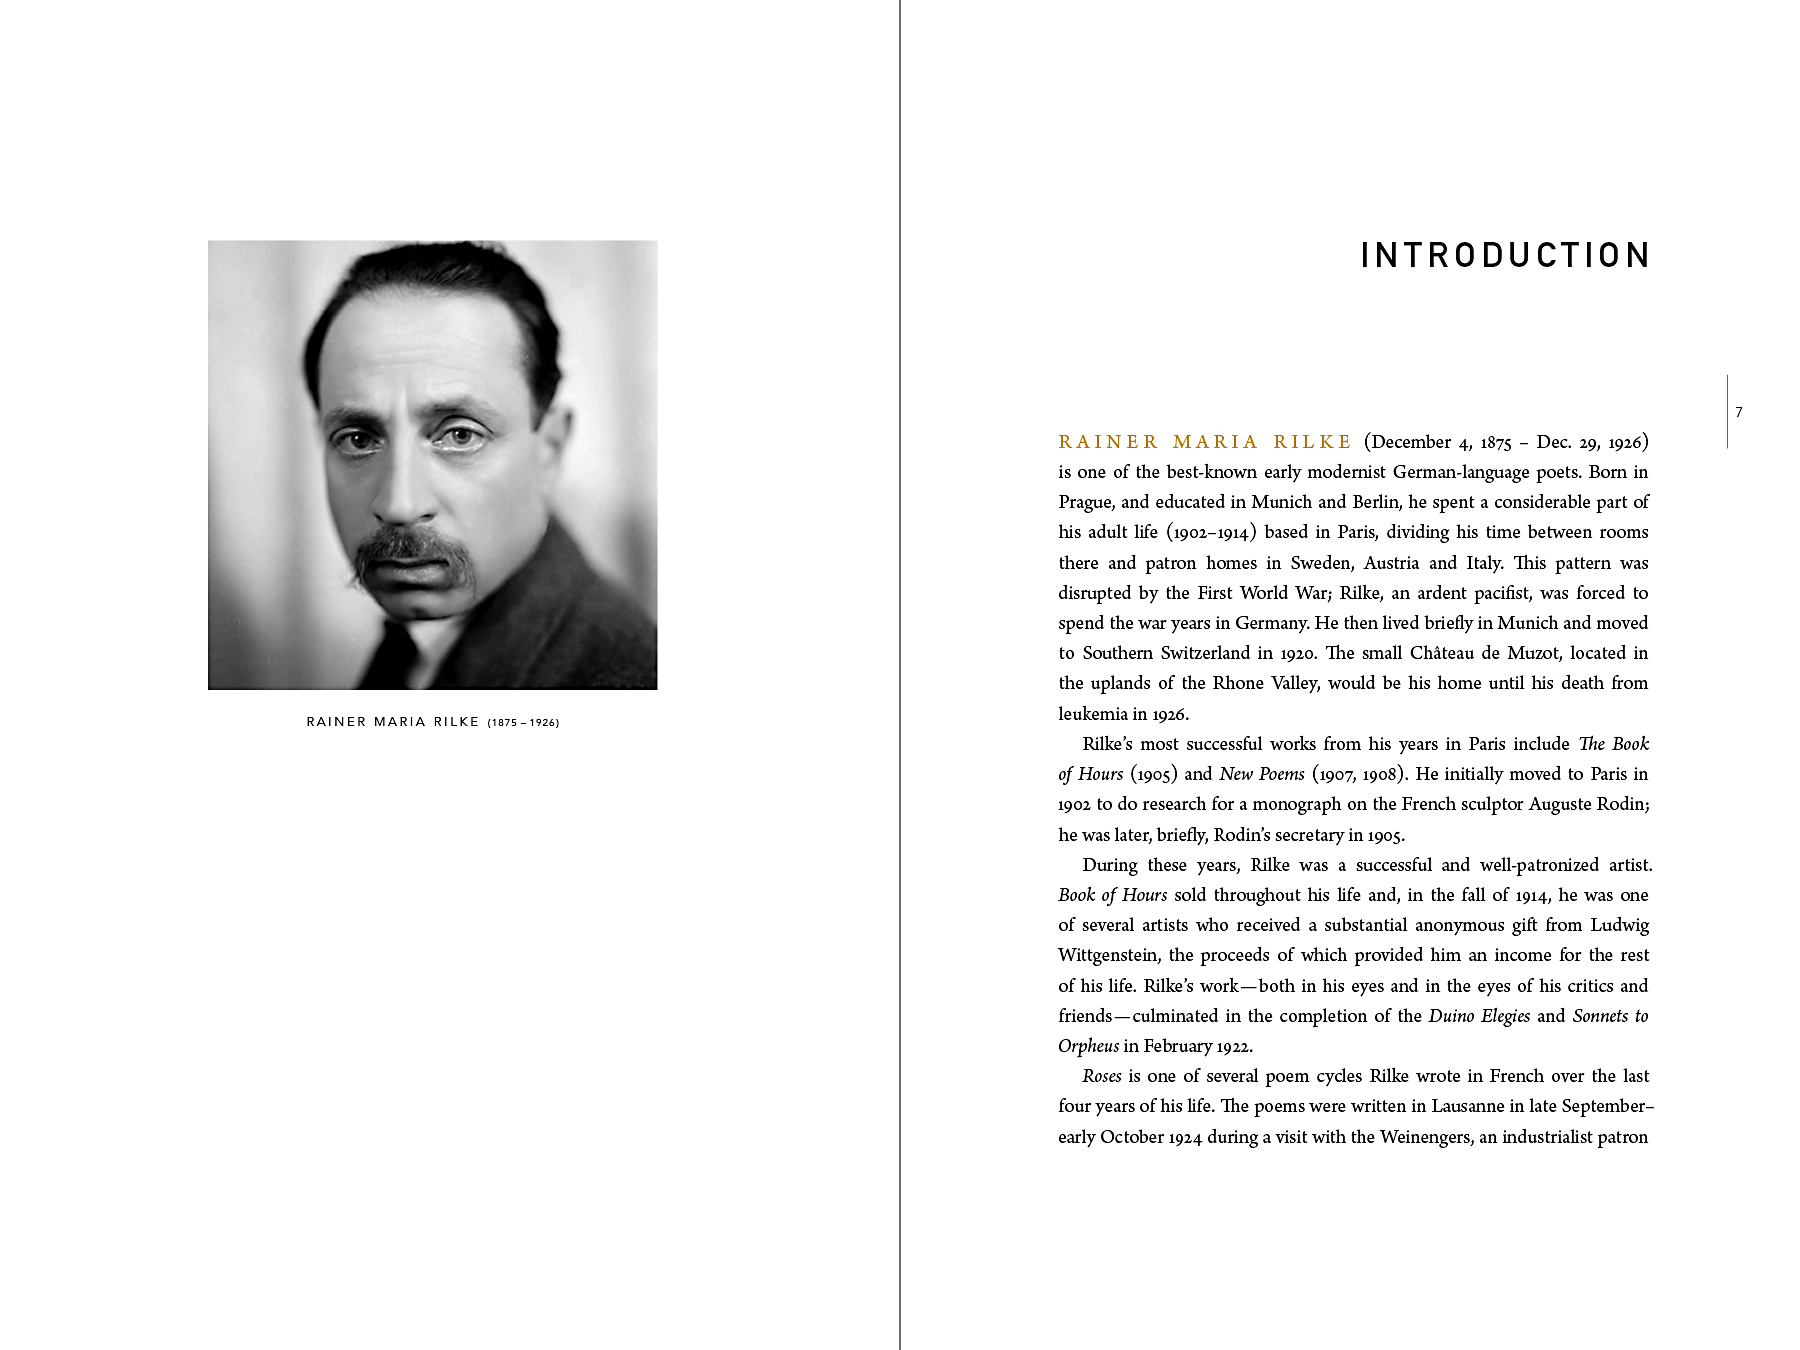 Introduction spread. Rilke looks at us from another century as we read about him.